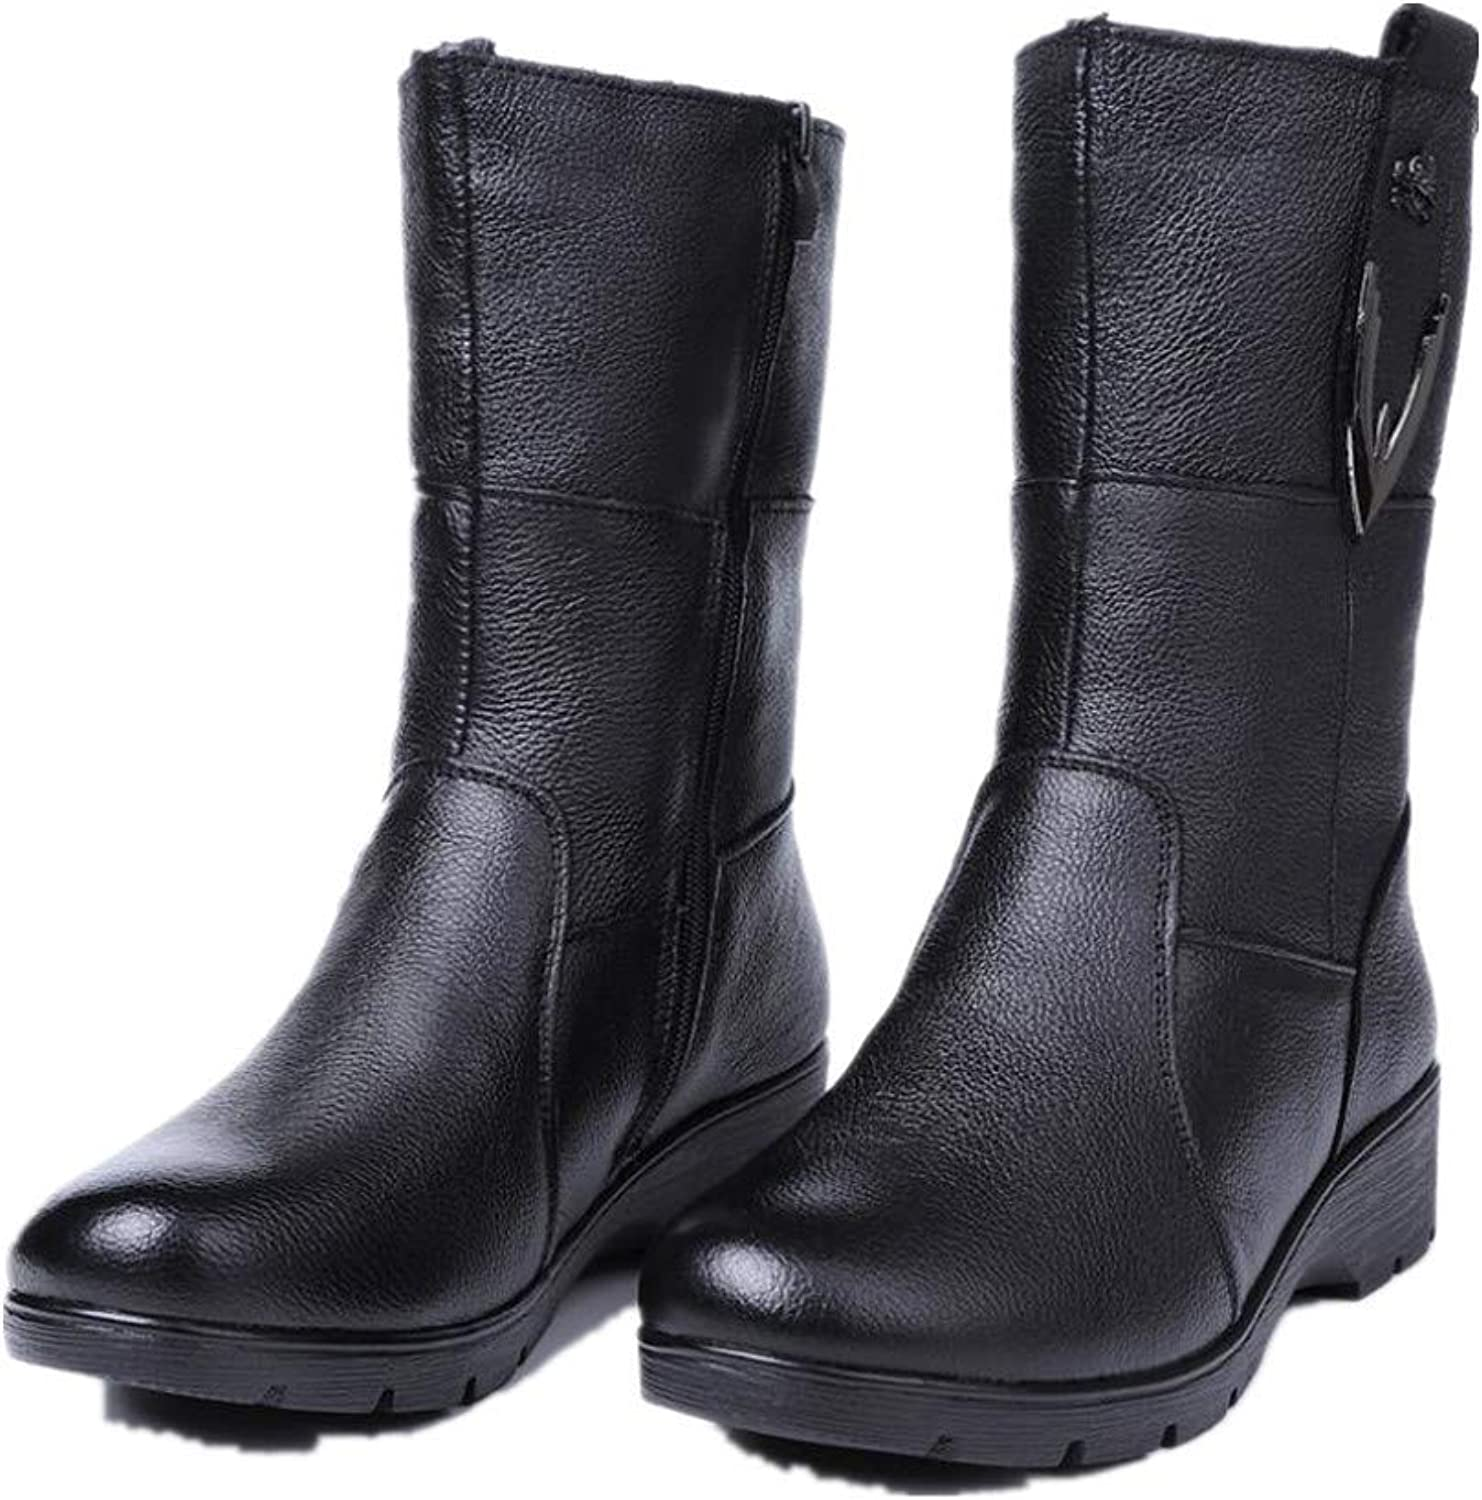 Gusha Women's Winter Snow Boots in The Boots Flat Martin Boots